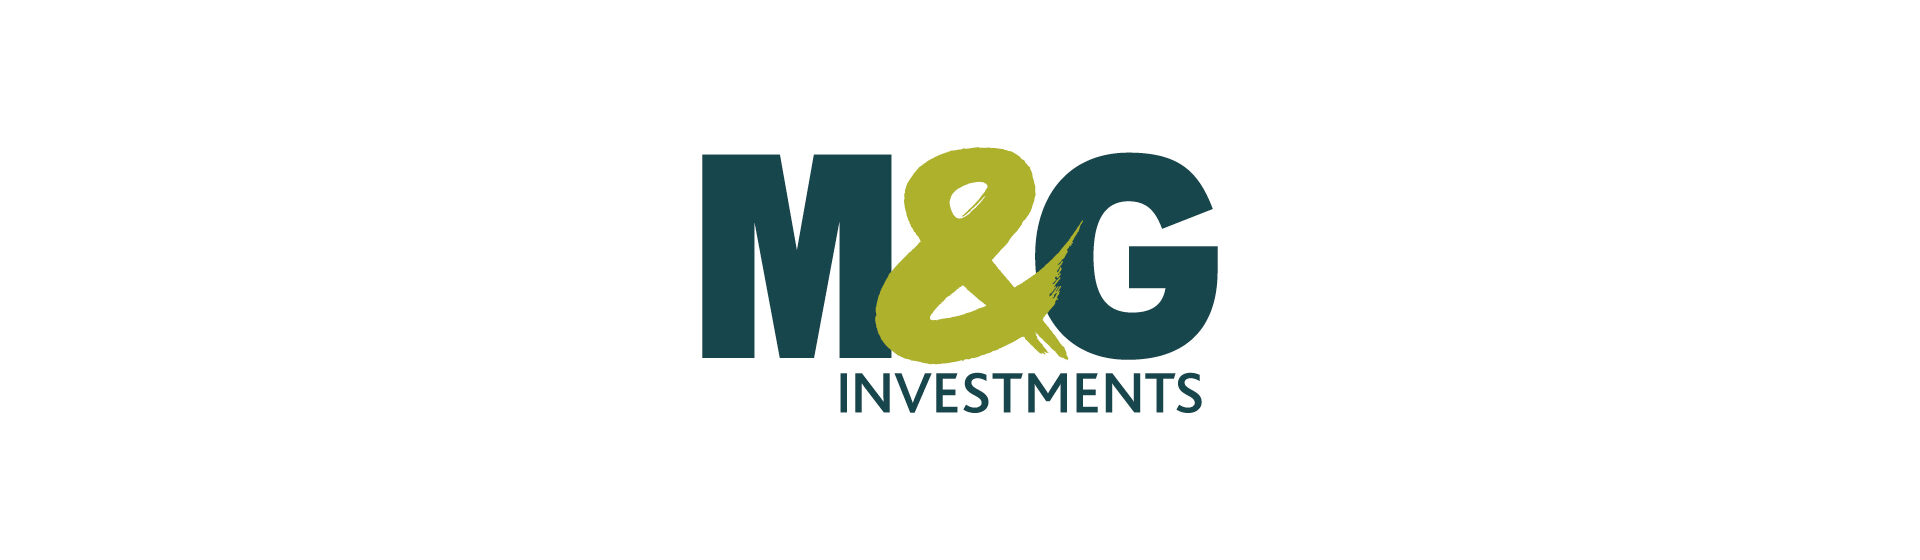 Impact Investing – Seeking positive impact and sustainable wealth – M&G